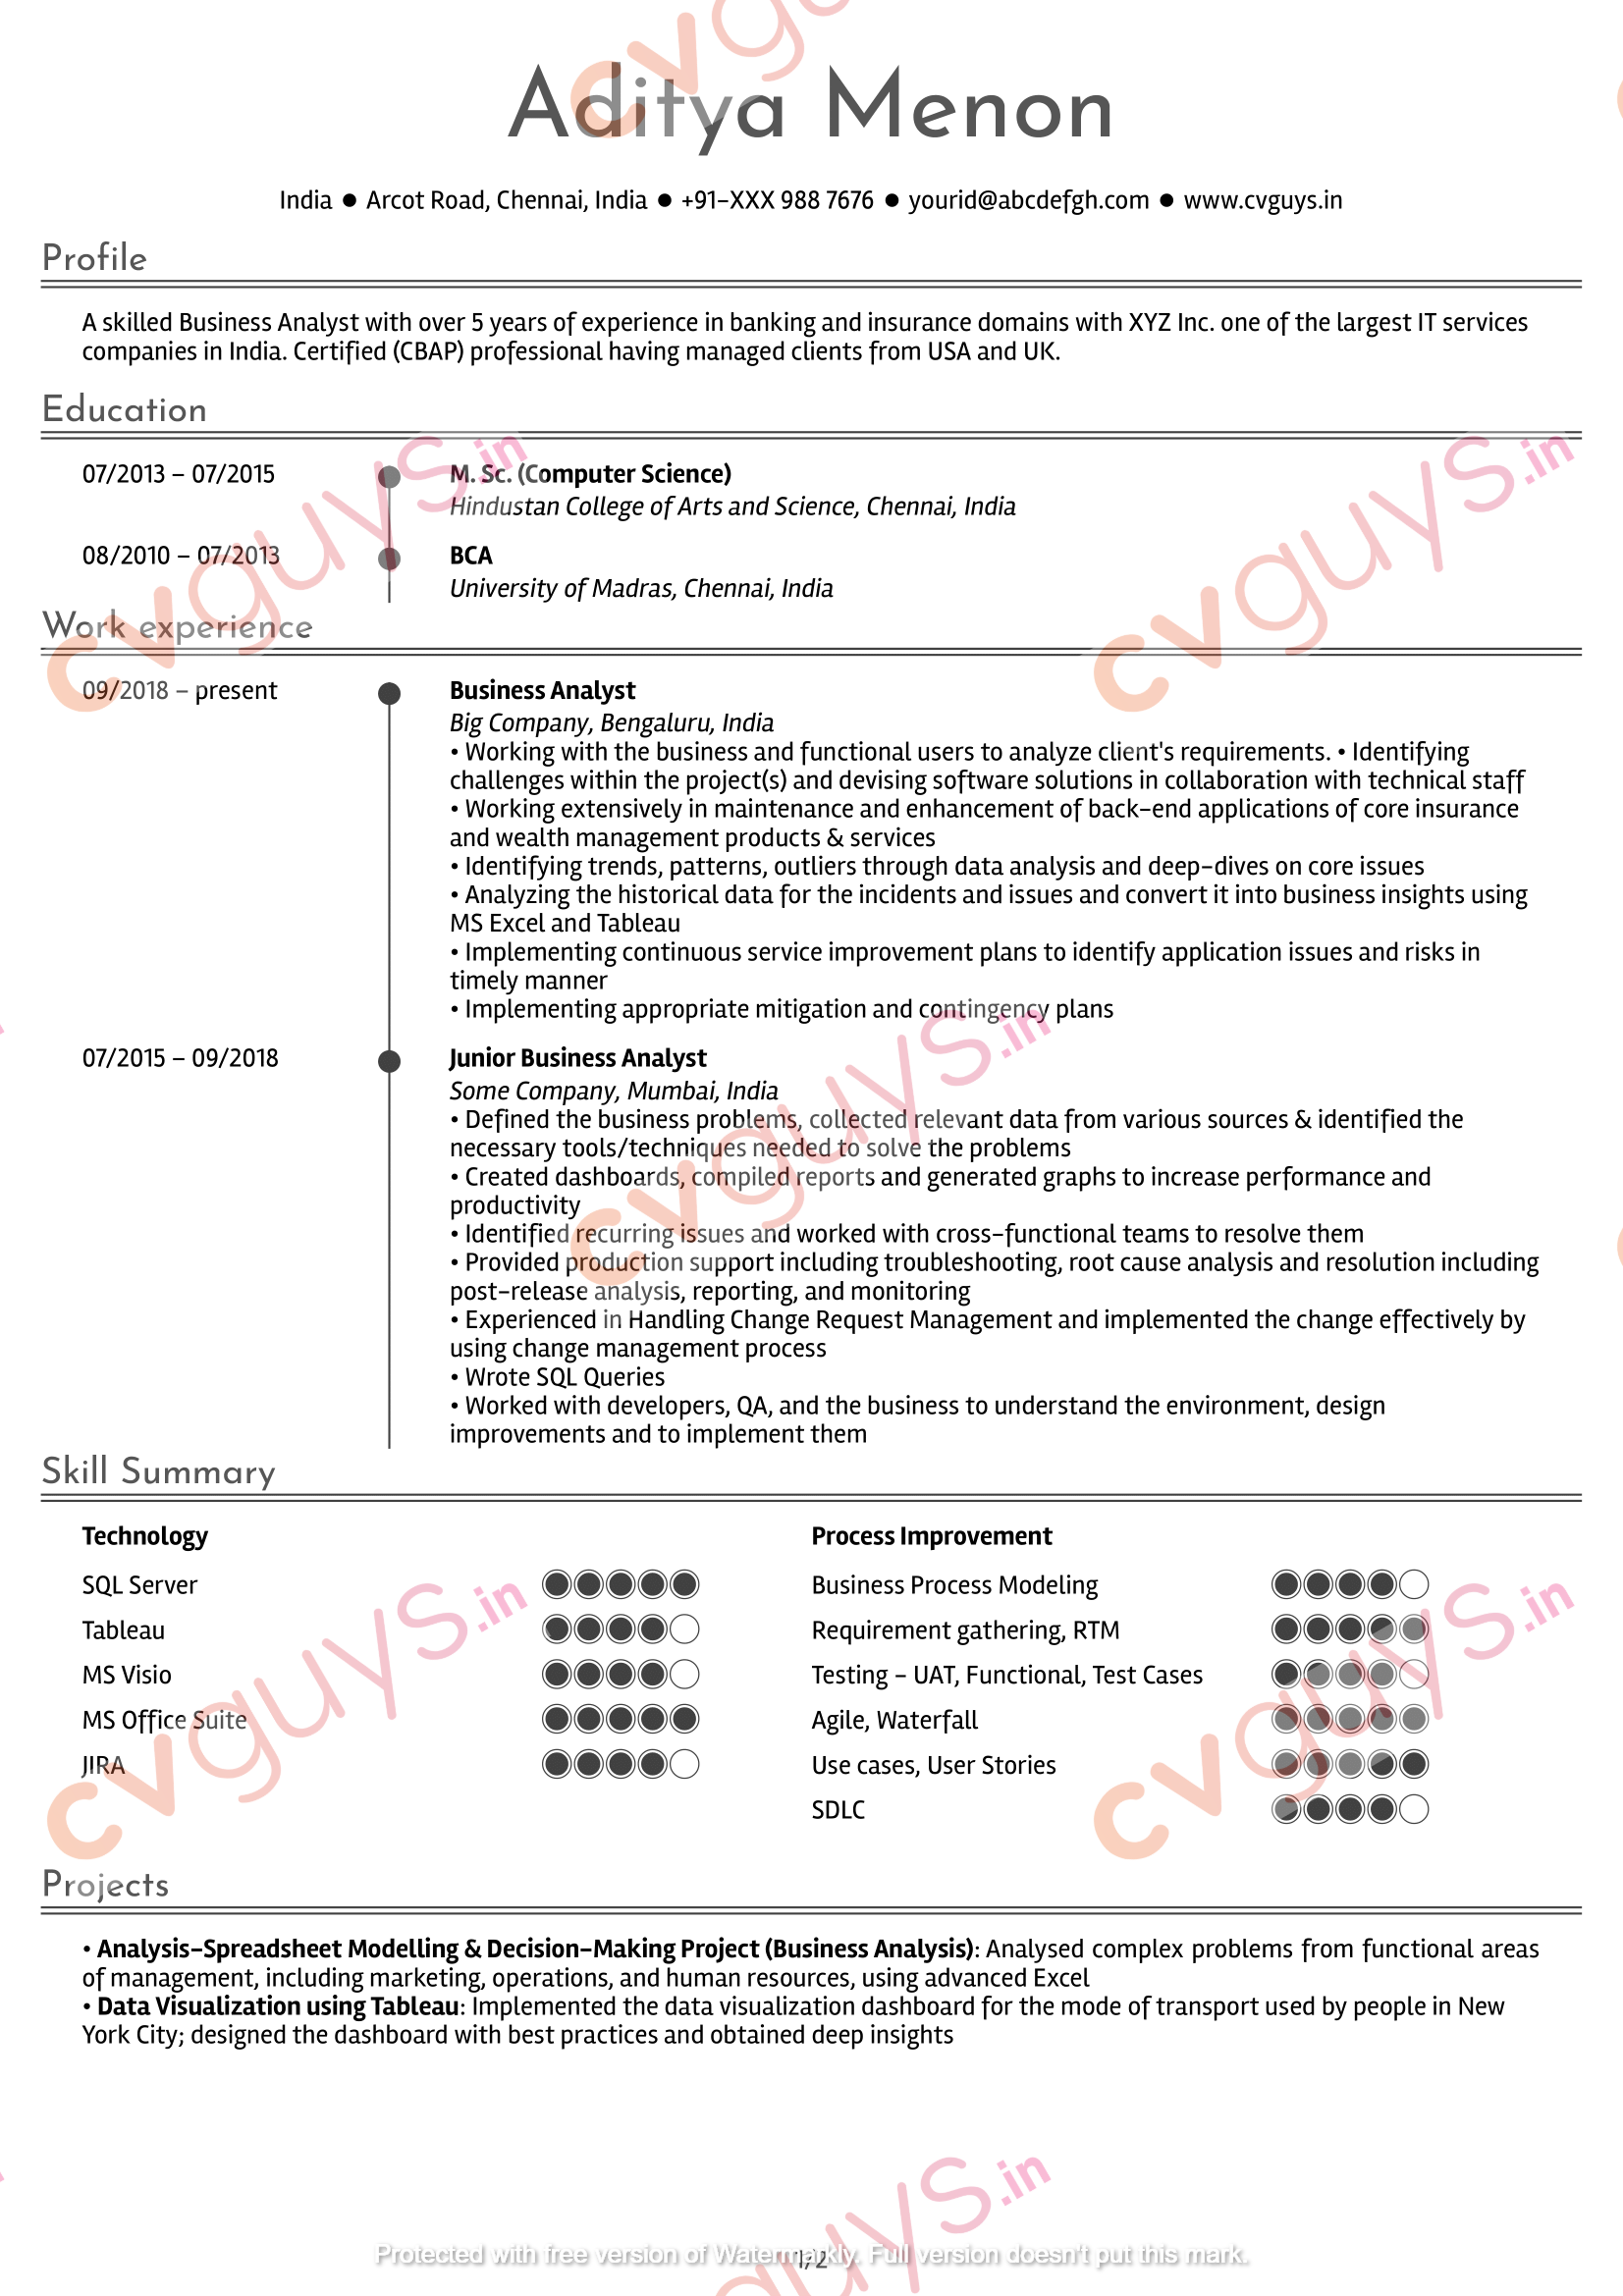 Business Analyst Resume Sample by CVGUYS.IN